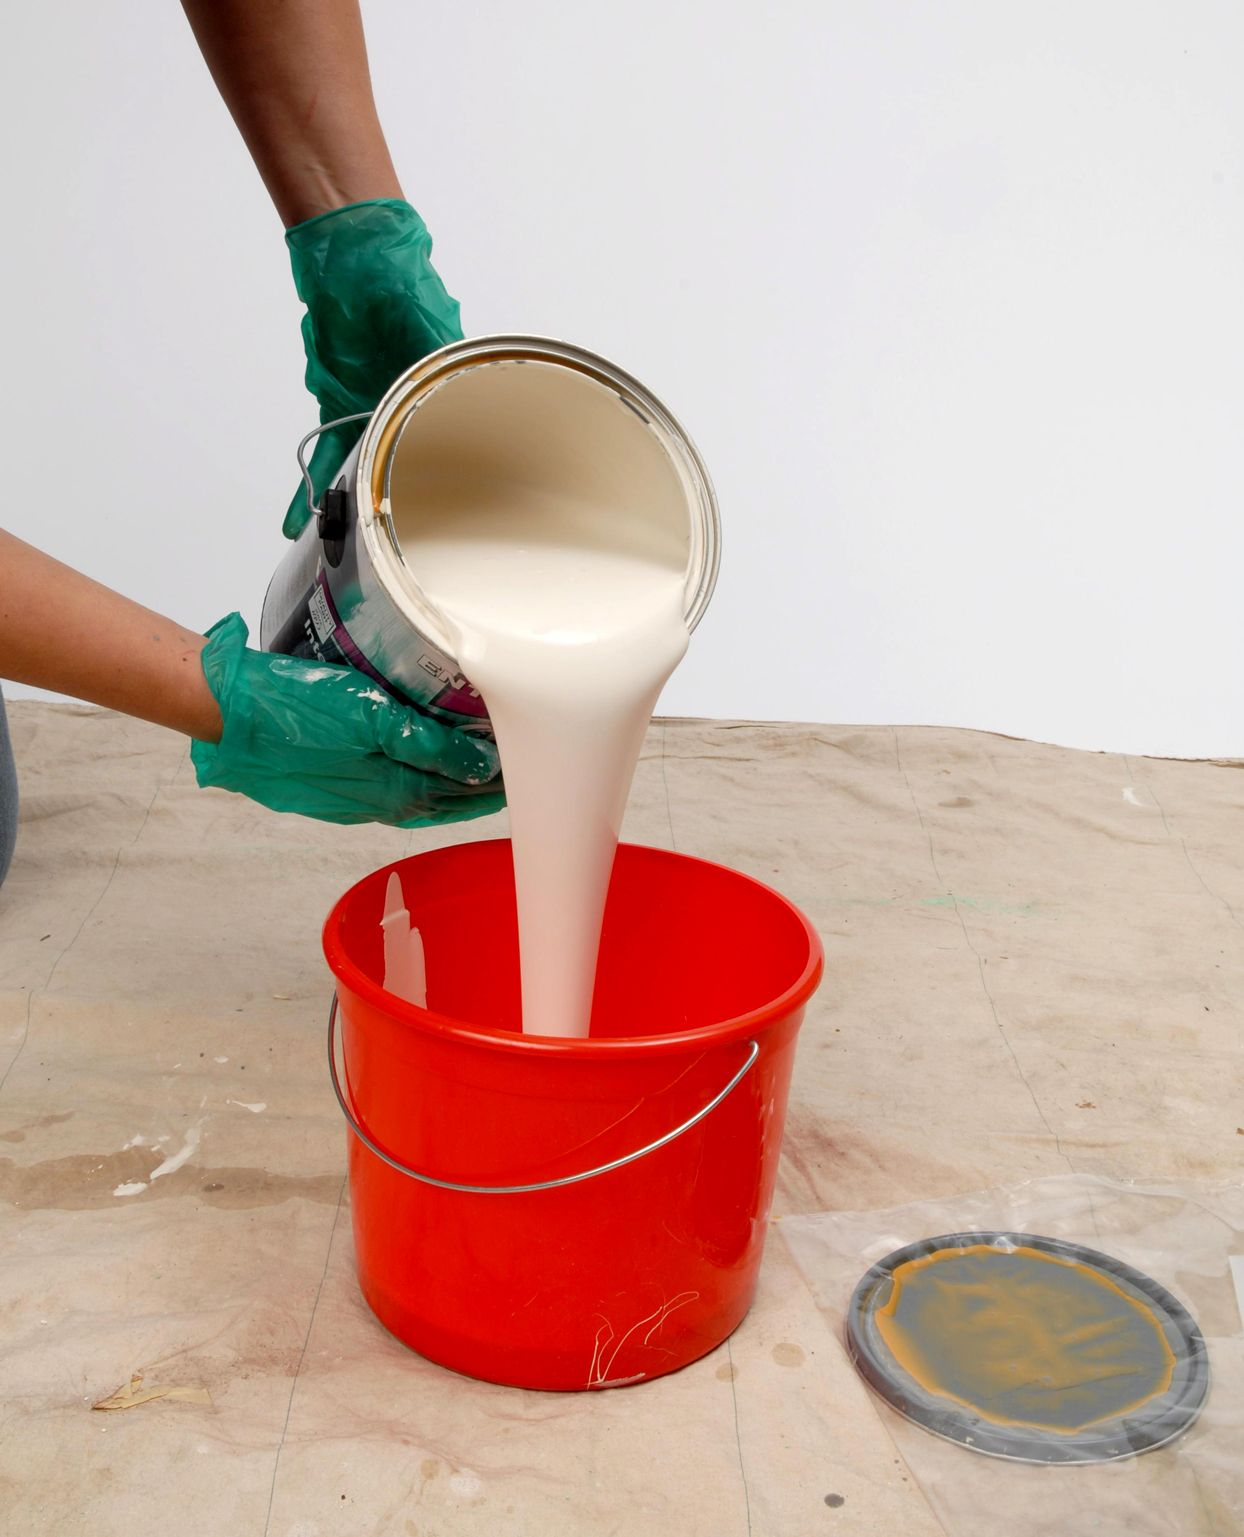 how to dispose of paint thinner cans